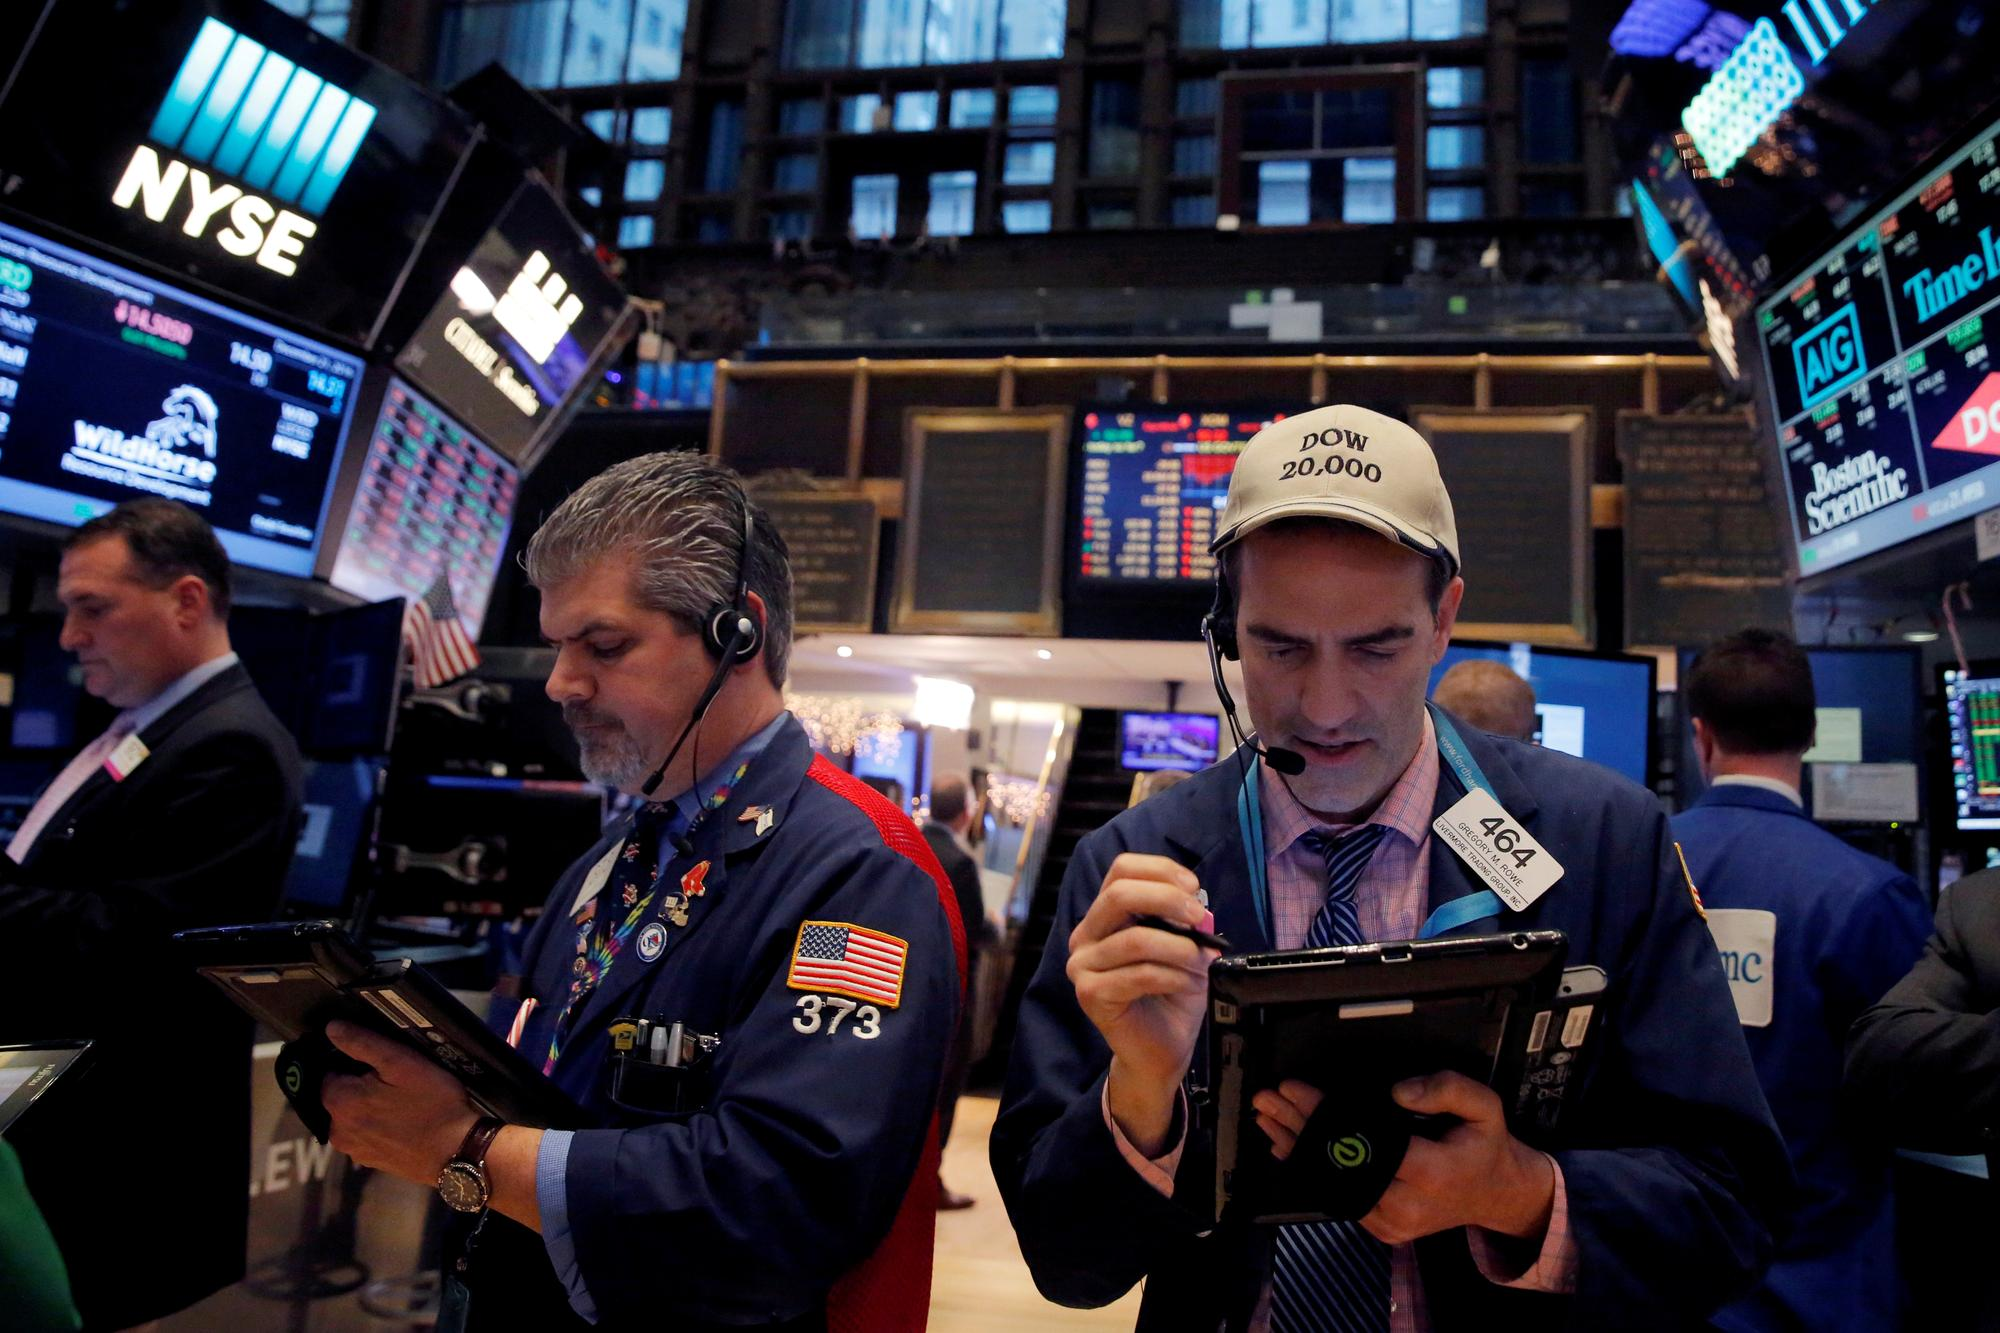 Wall Street touches record high on trade optimism